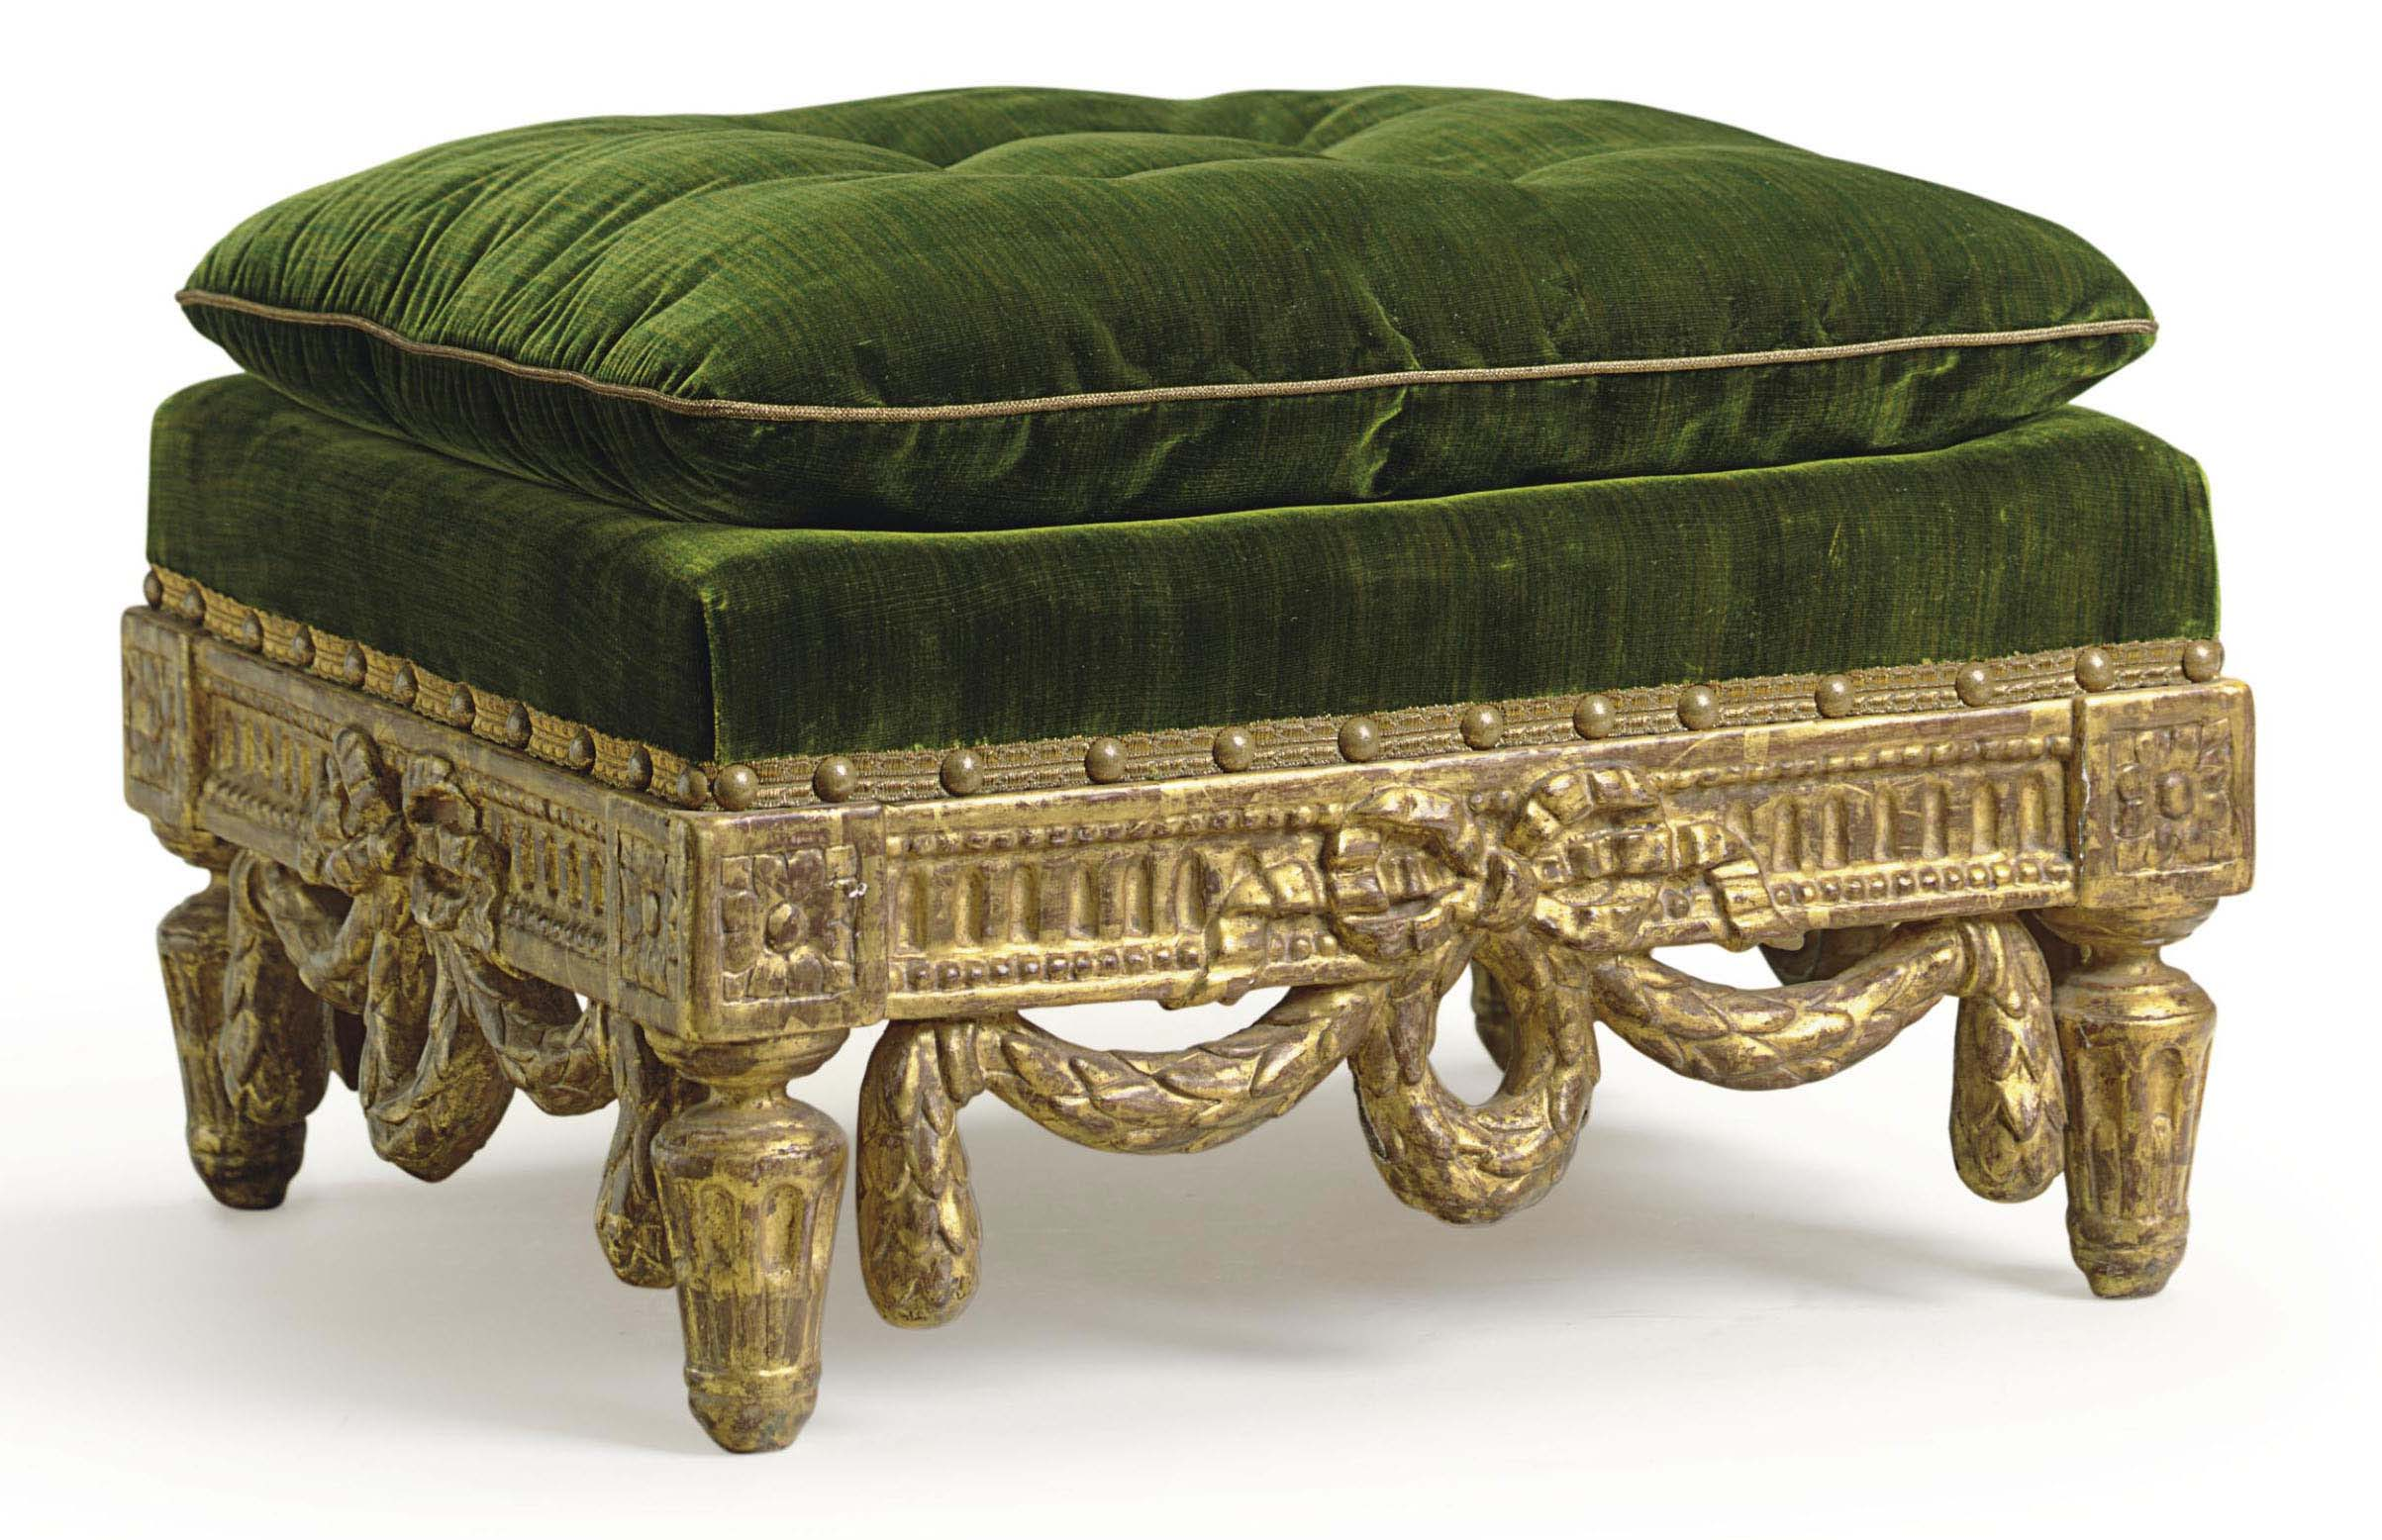 A LATE LOUIS XV GILTWOOD TABOURET